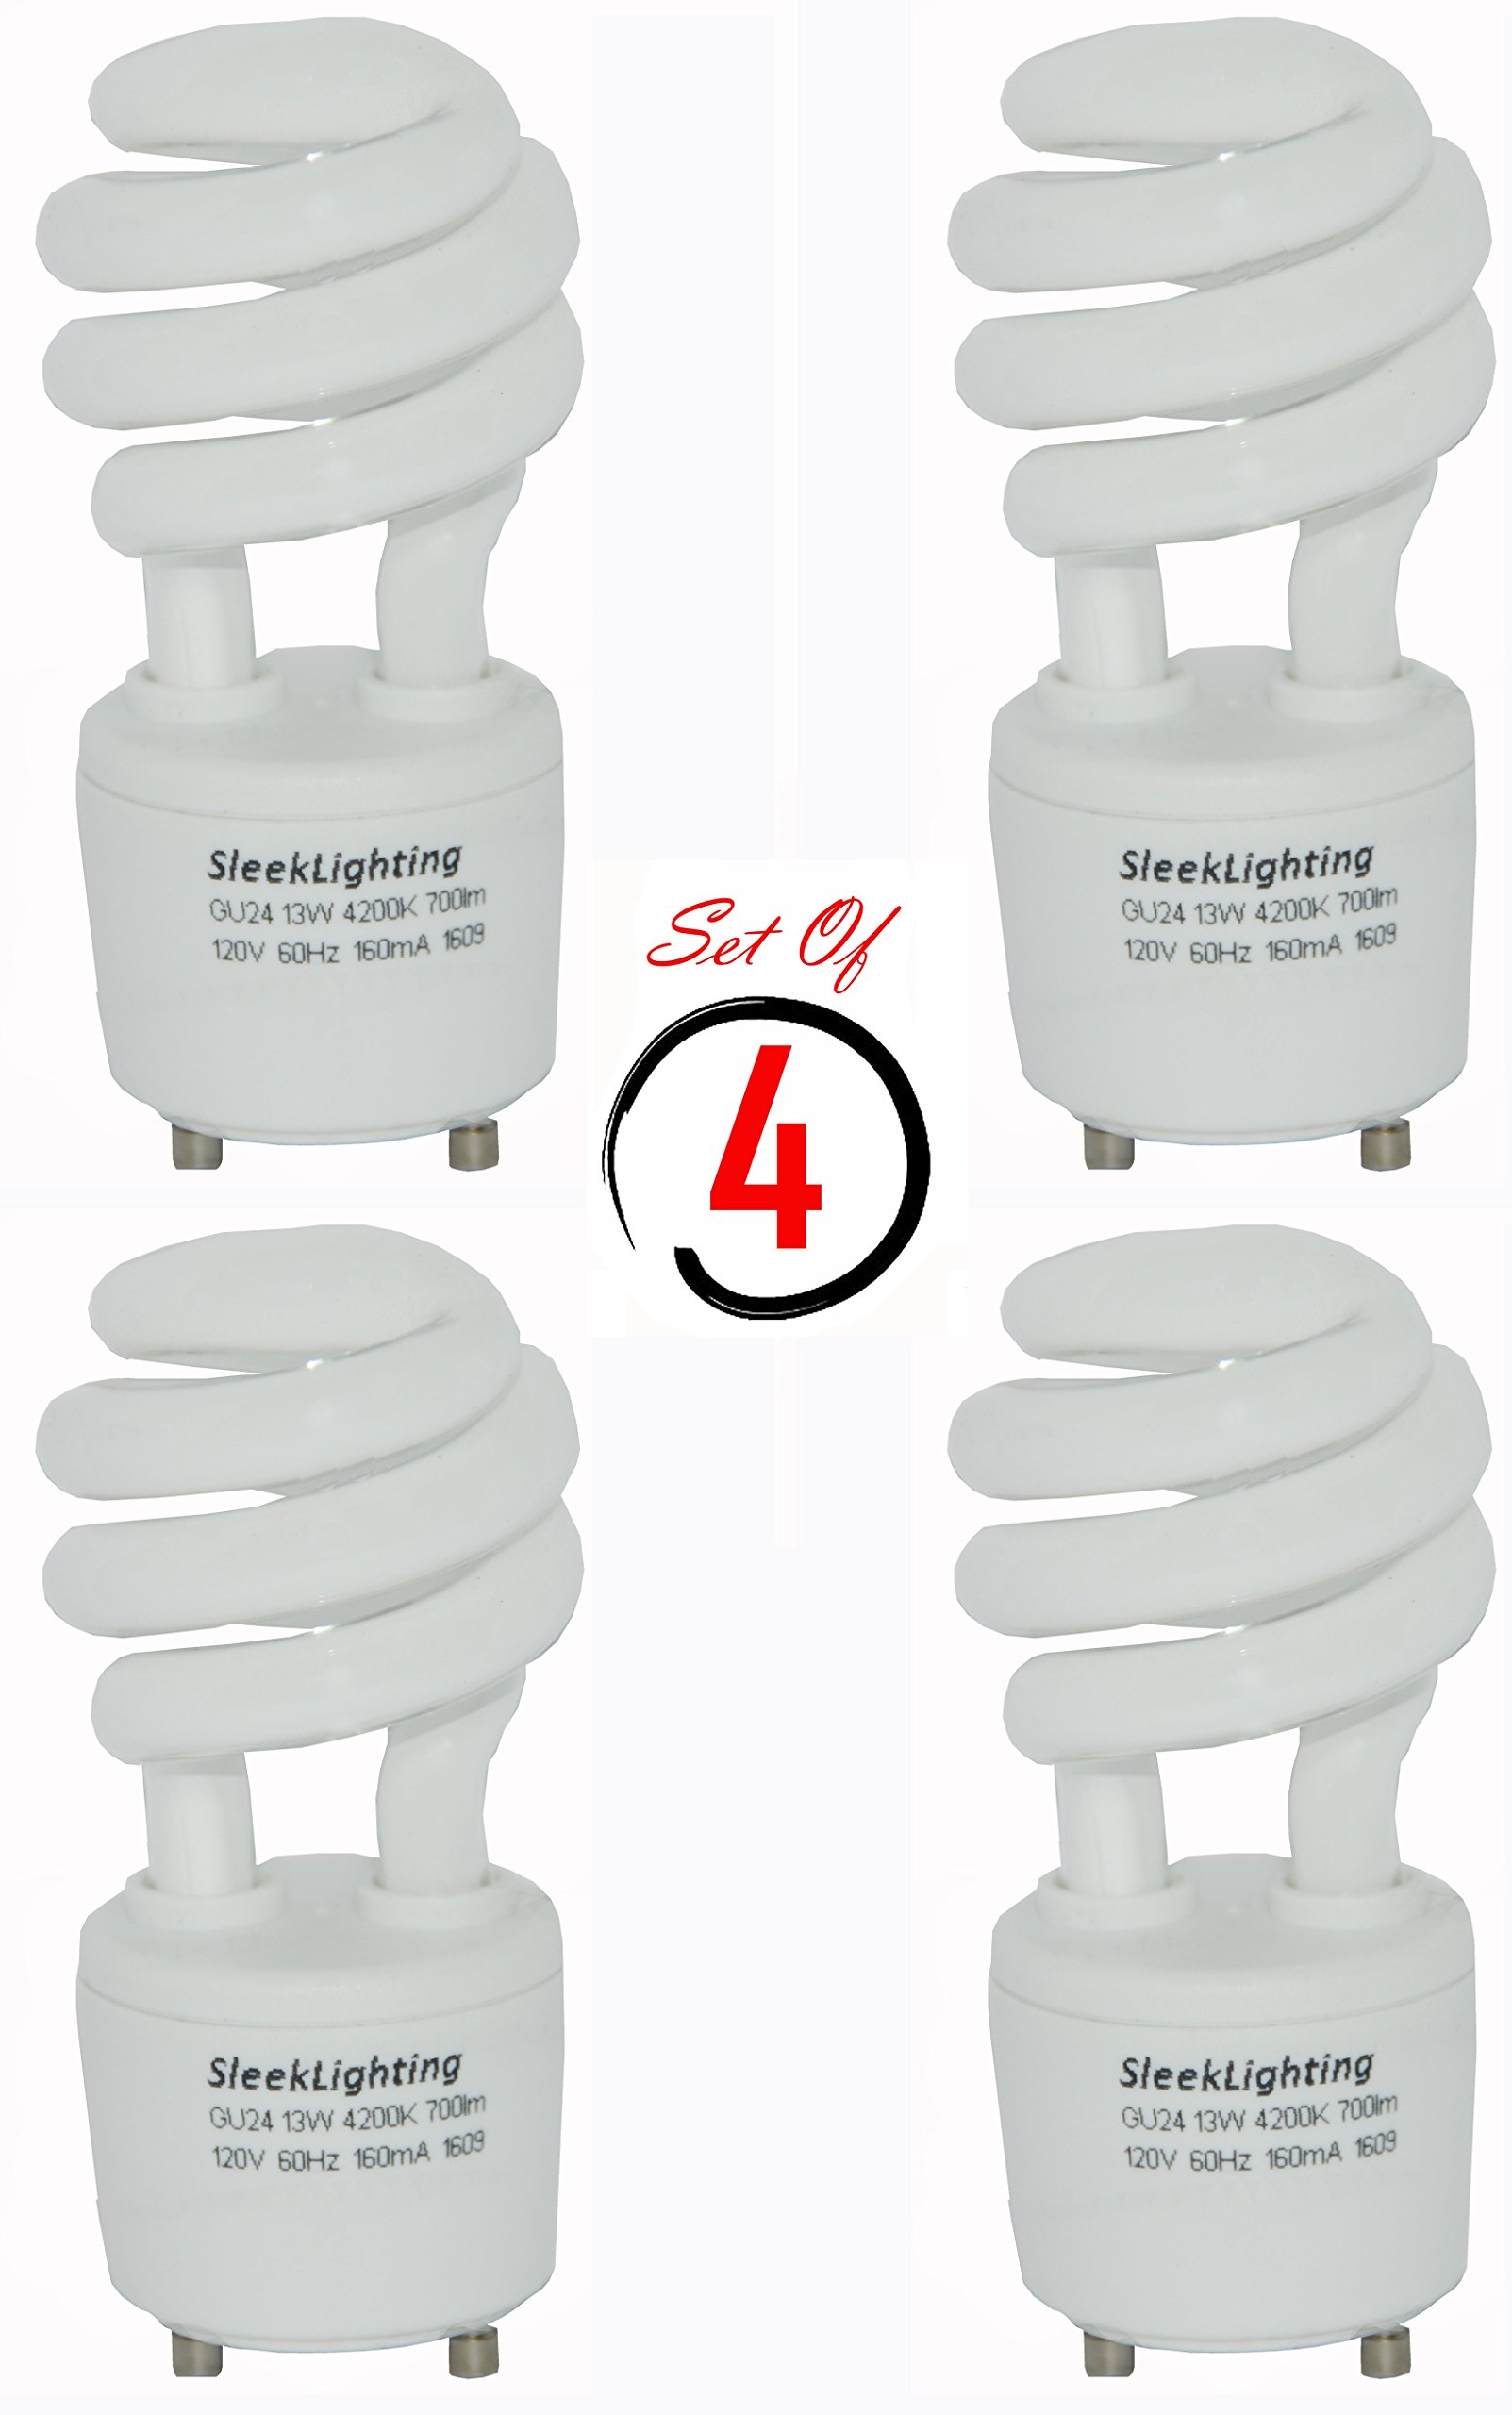 lighting dawn philips fluorescent energy cfl compact and youtube watt dusk bulbs watch saver review bulb light to demonstration